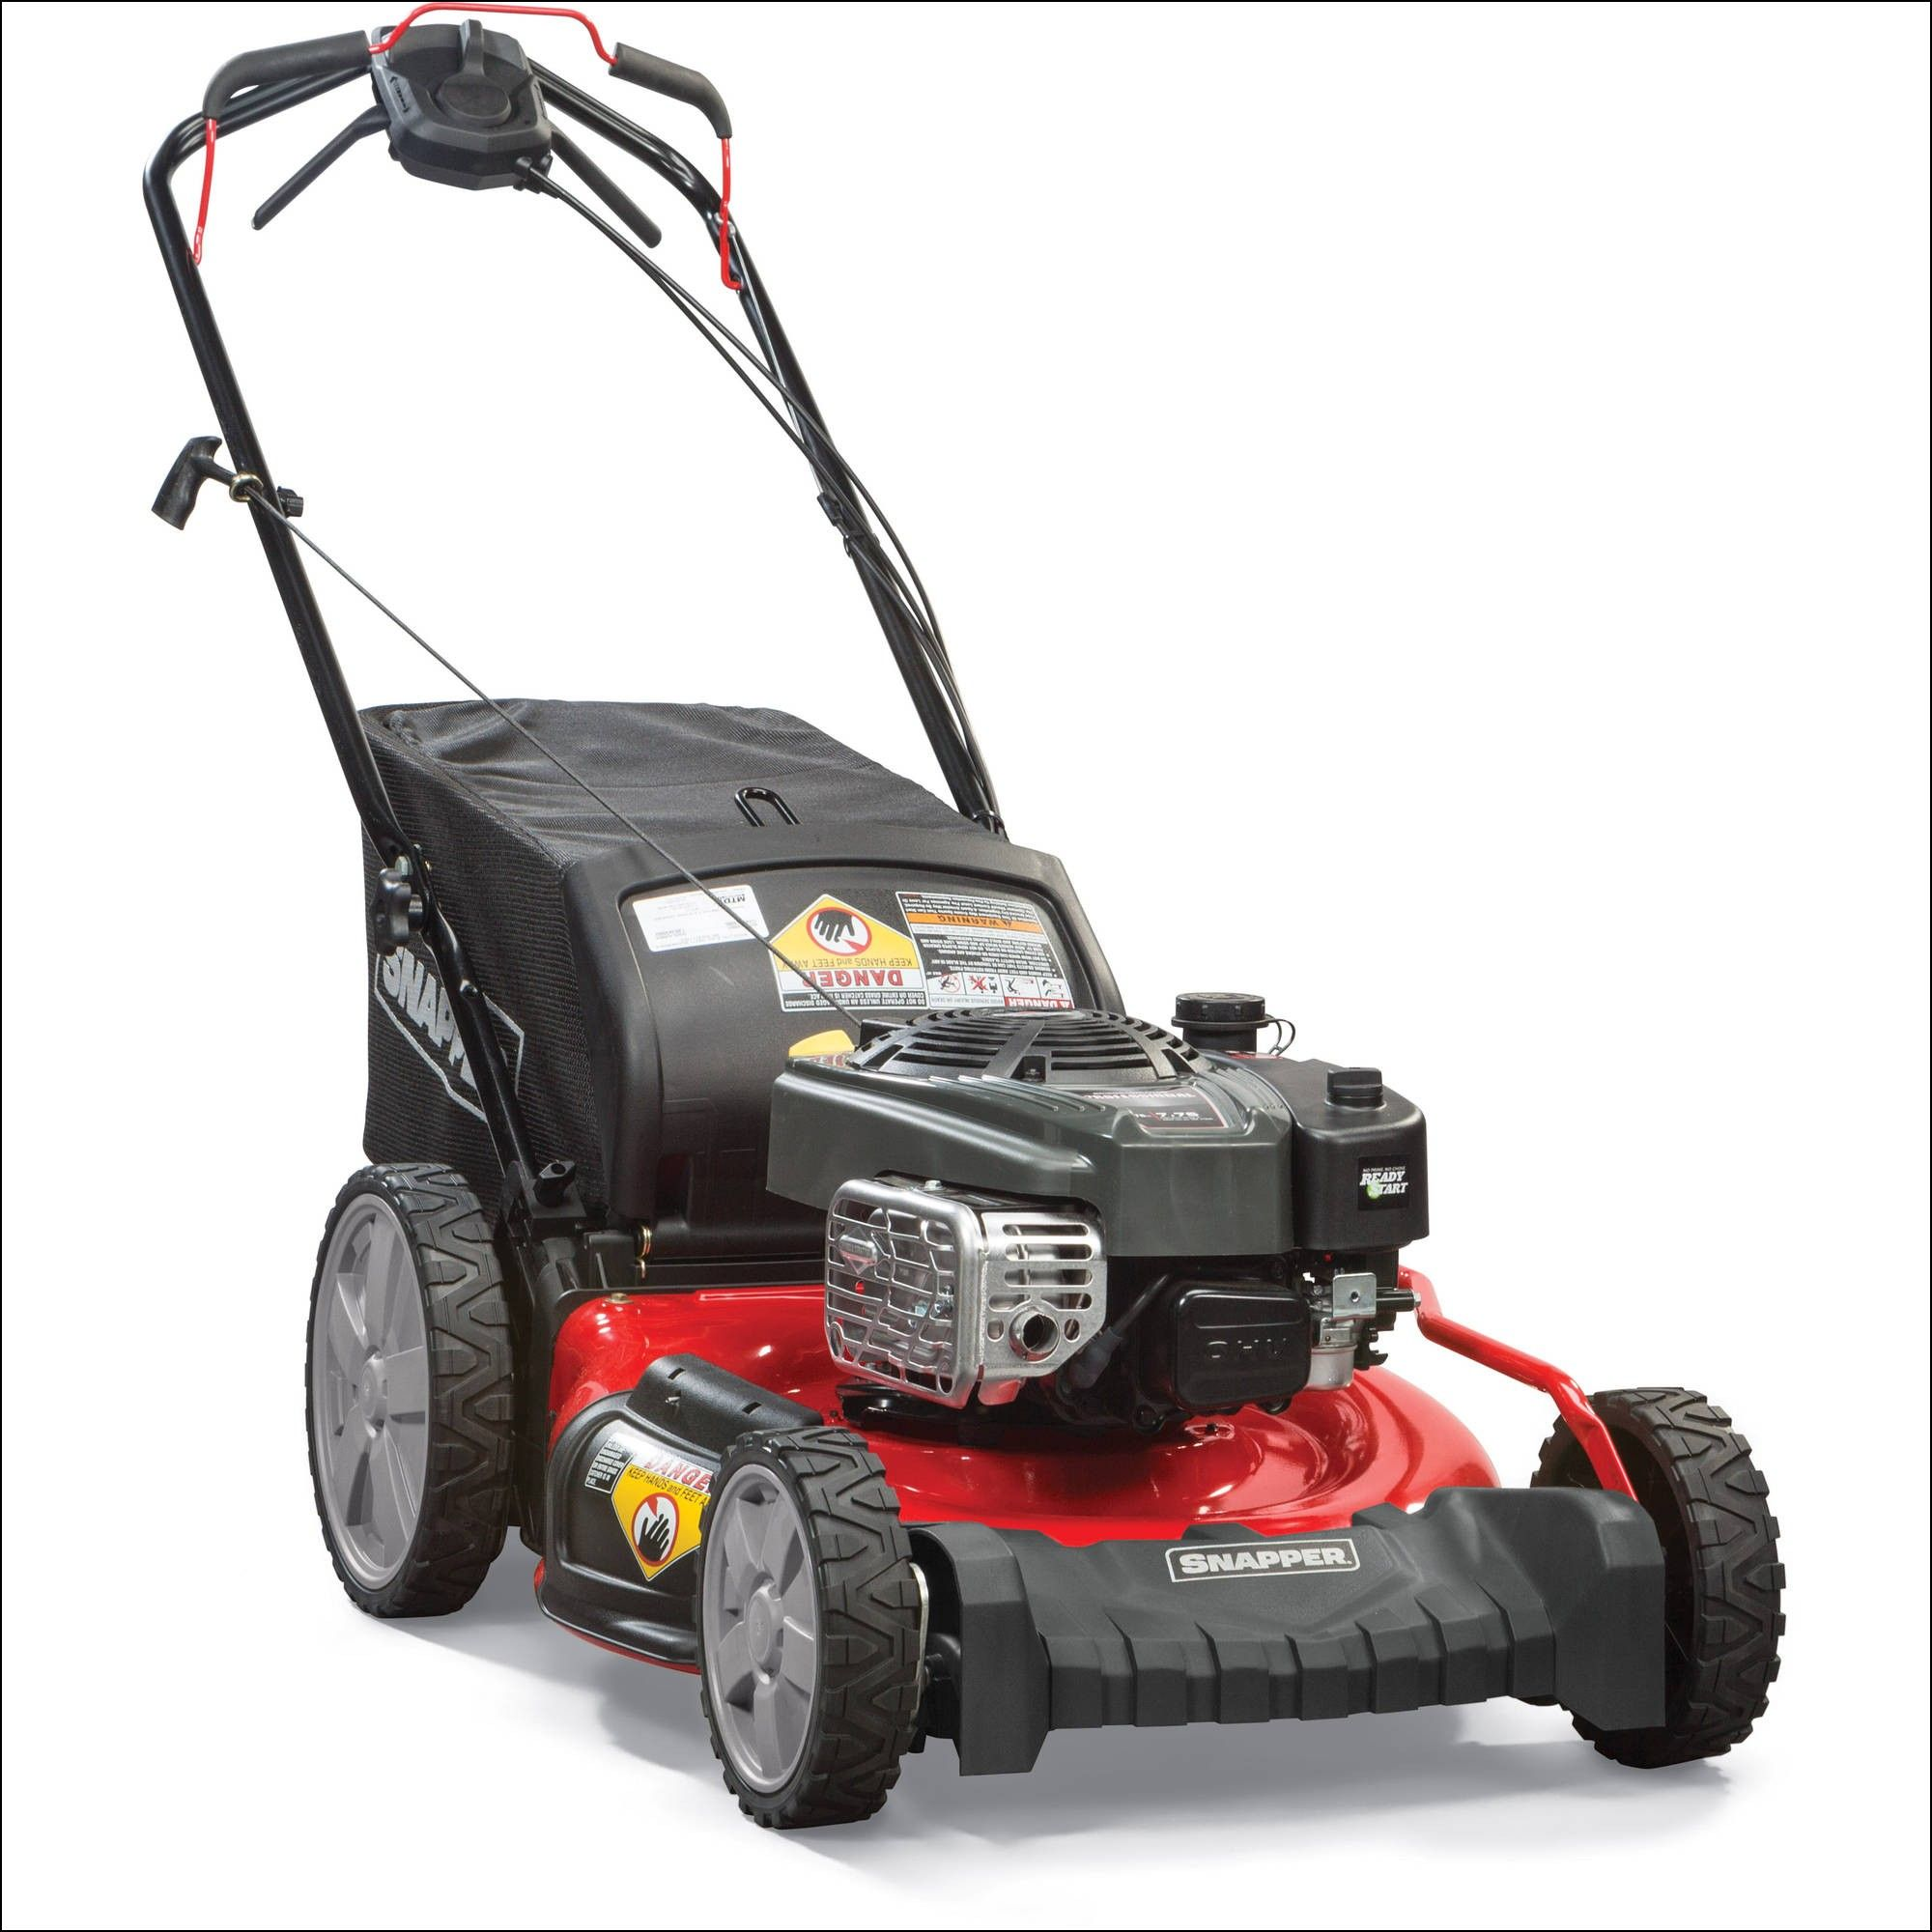 Image result for drive on mower accessories images